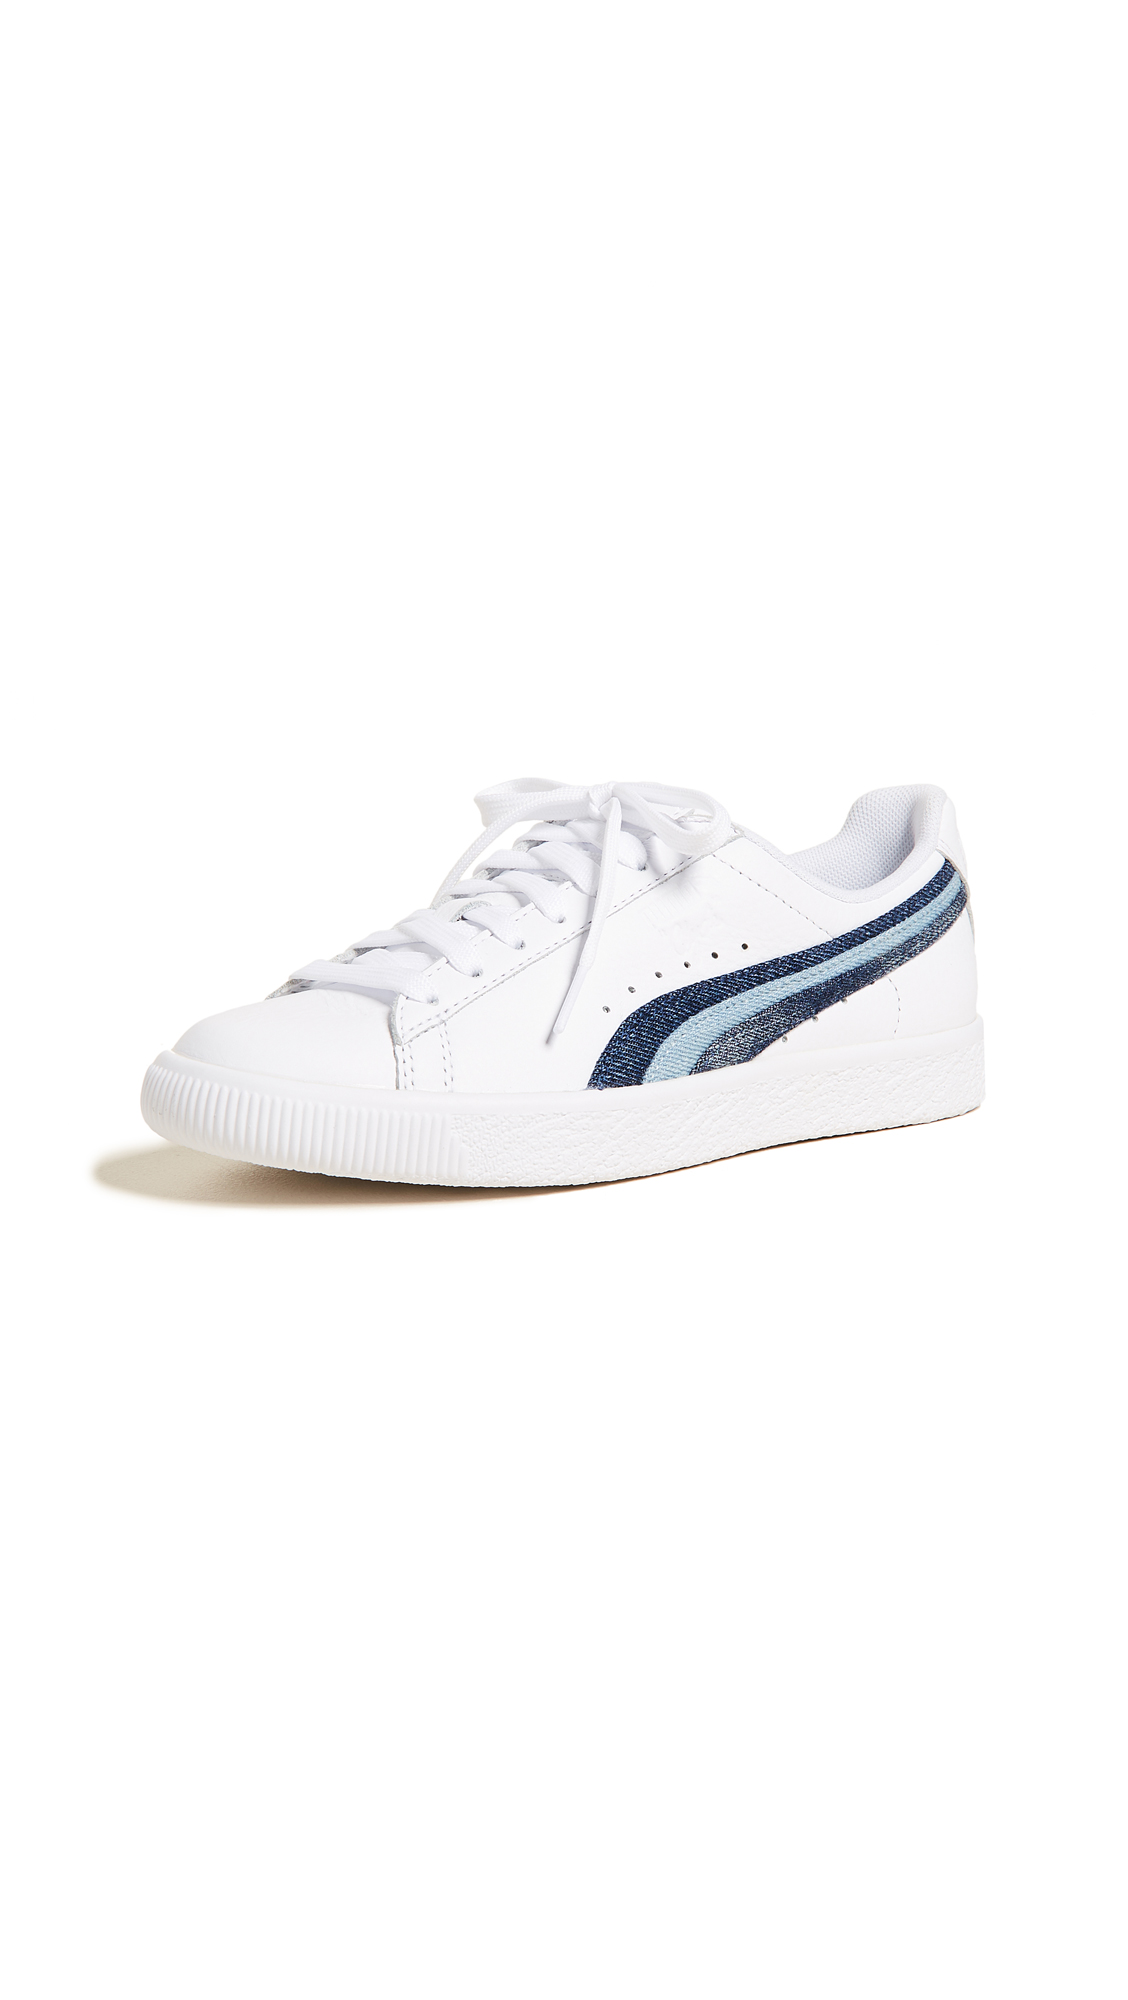 PUMA Clyde Denim Leather Sneakers - Puma White